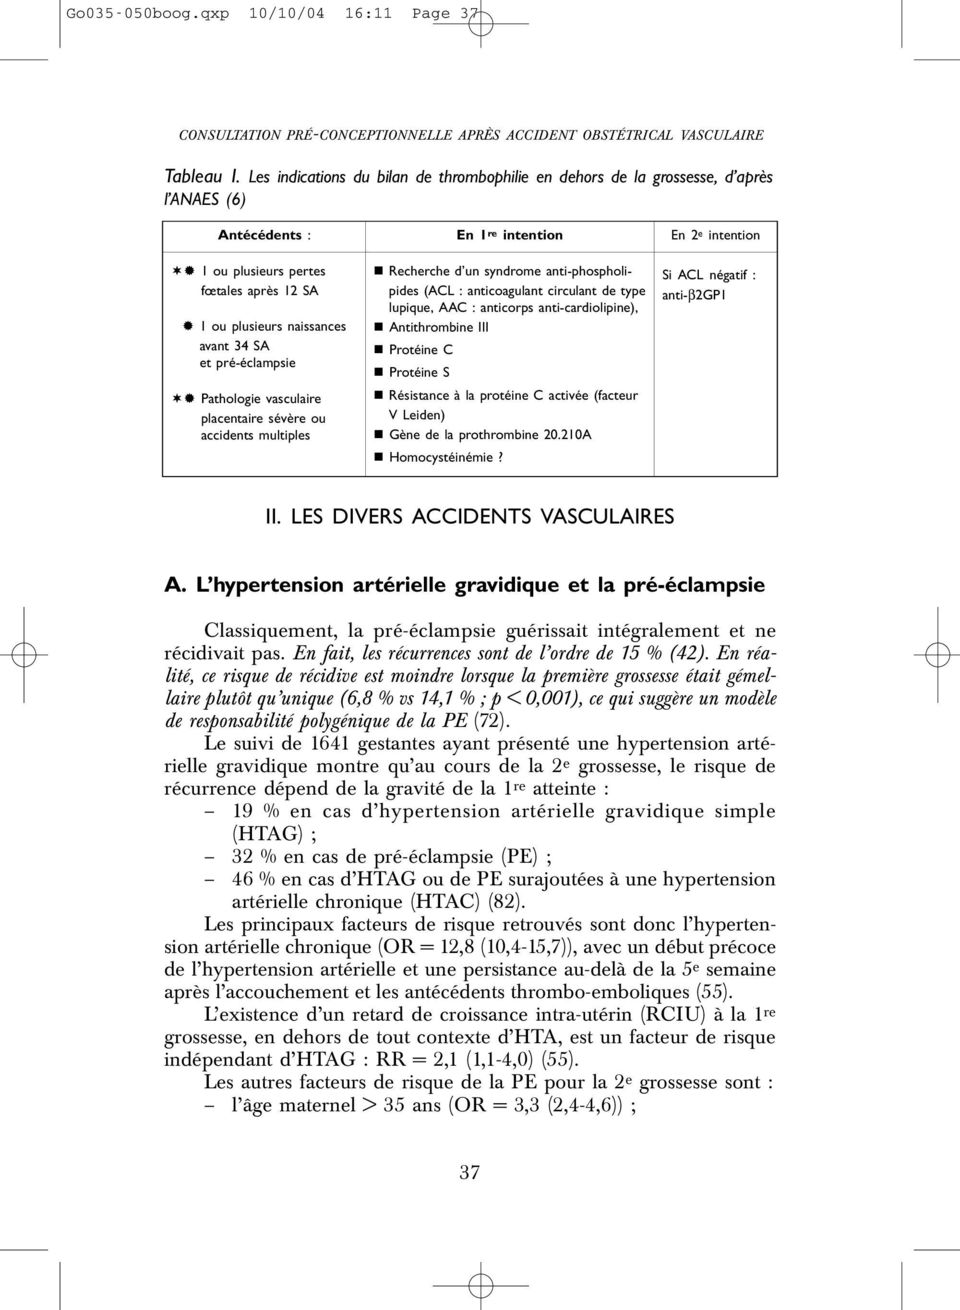 Pathologie vasculaire placentaire sévère ou accidents multiples En 1 re intention Recherche d un syndrome anti-phospholipides (ACL : anticoagulant circulant de type lupique, AAC : anticorps